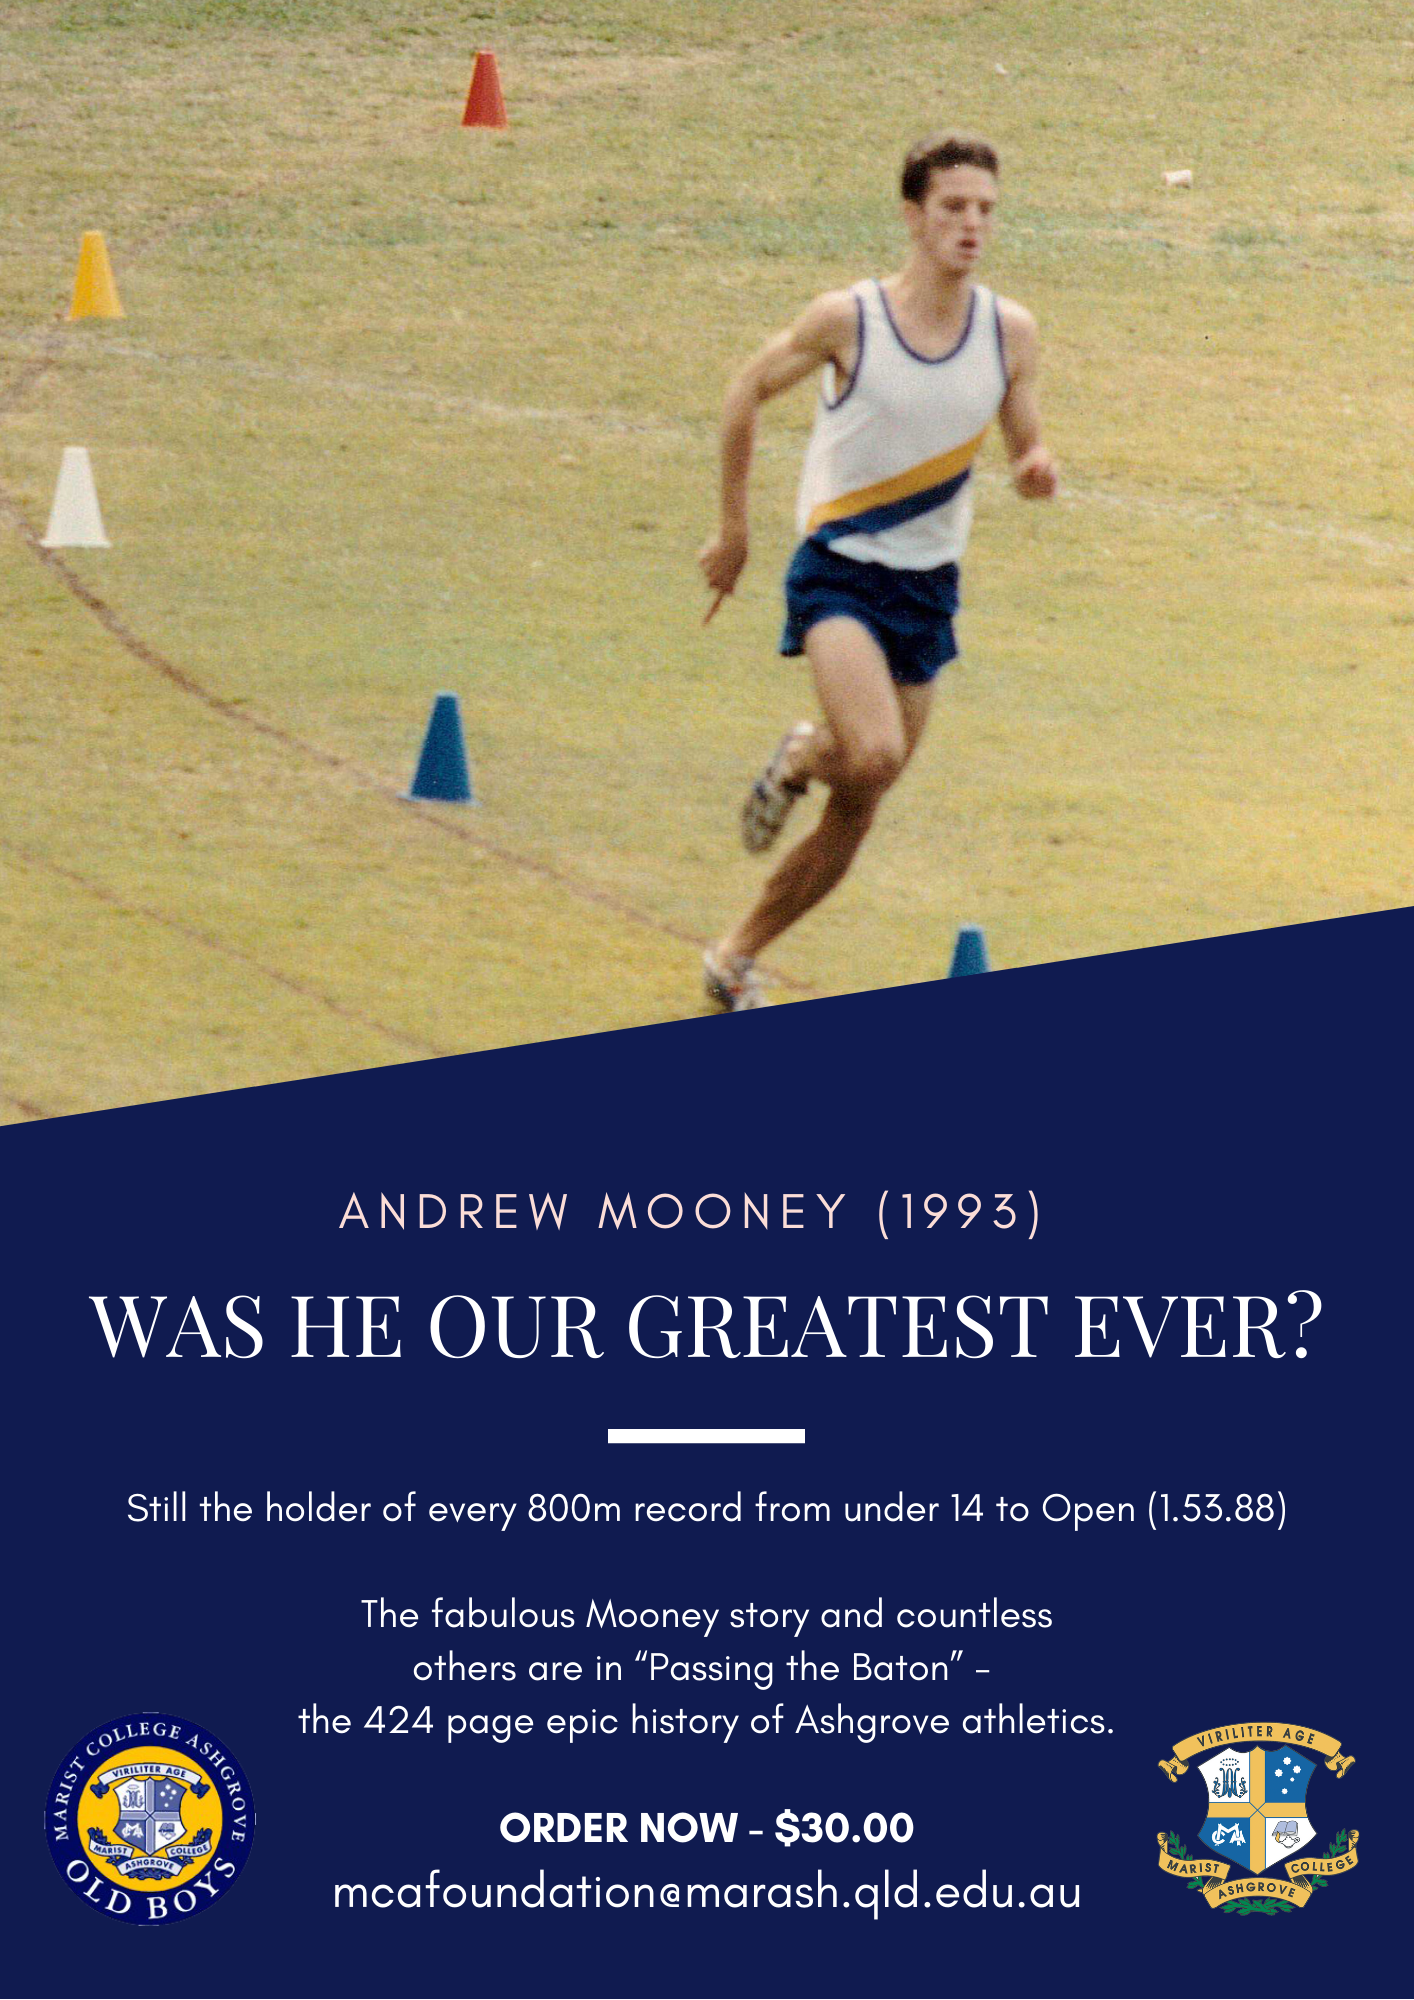 Andrew Mooney (1993) – Was he our greatest ever?